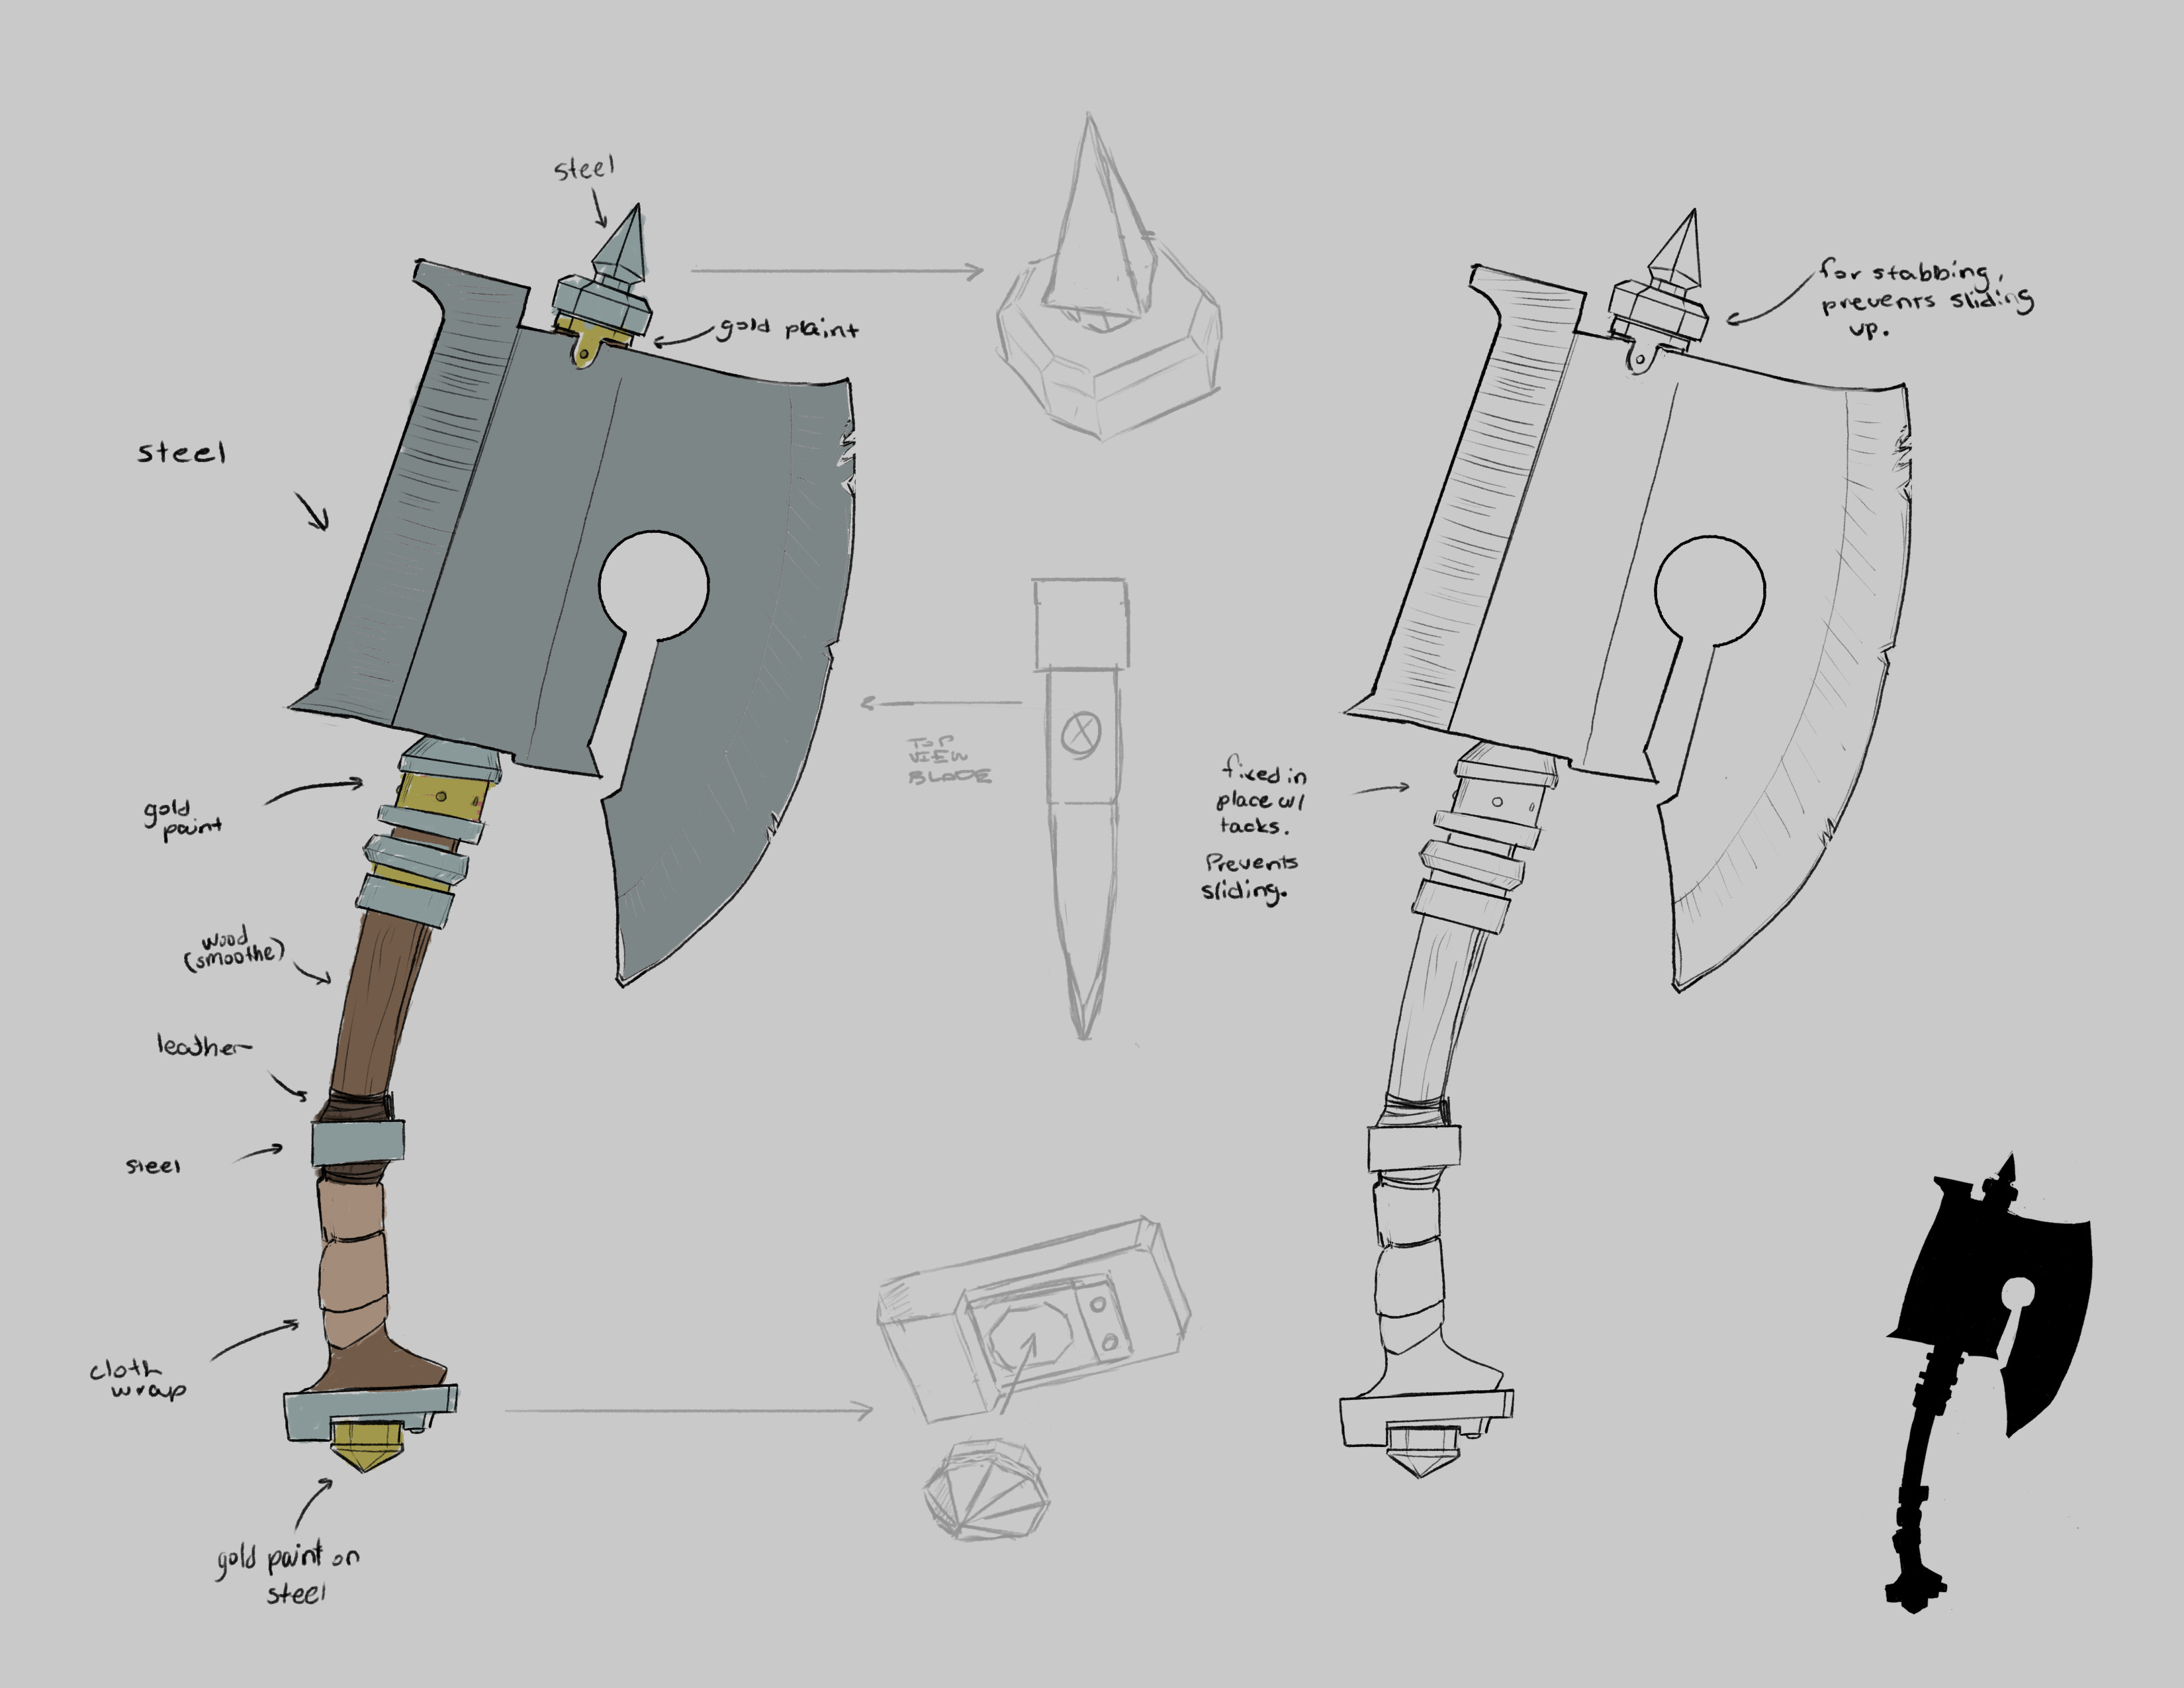 Weapon linework and details sheet that would be used for modeling a cleaving axe.